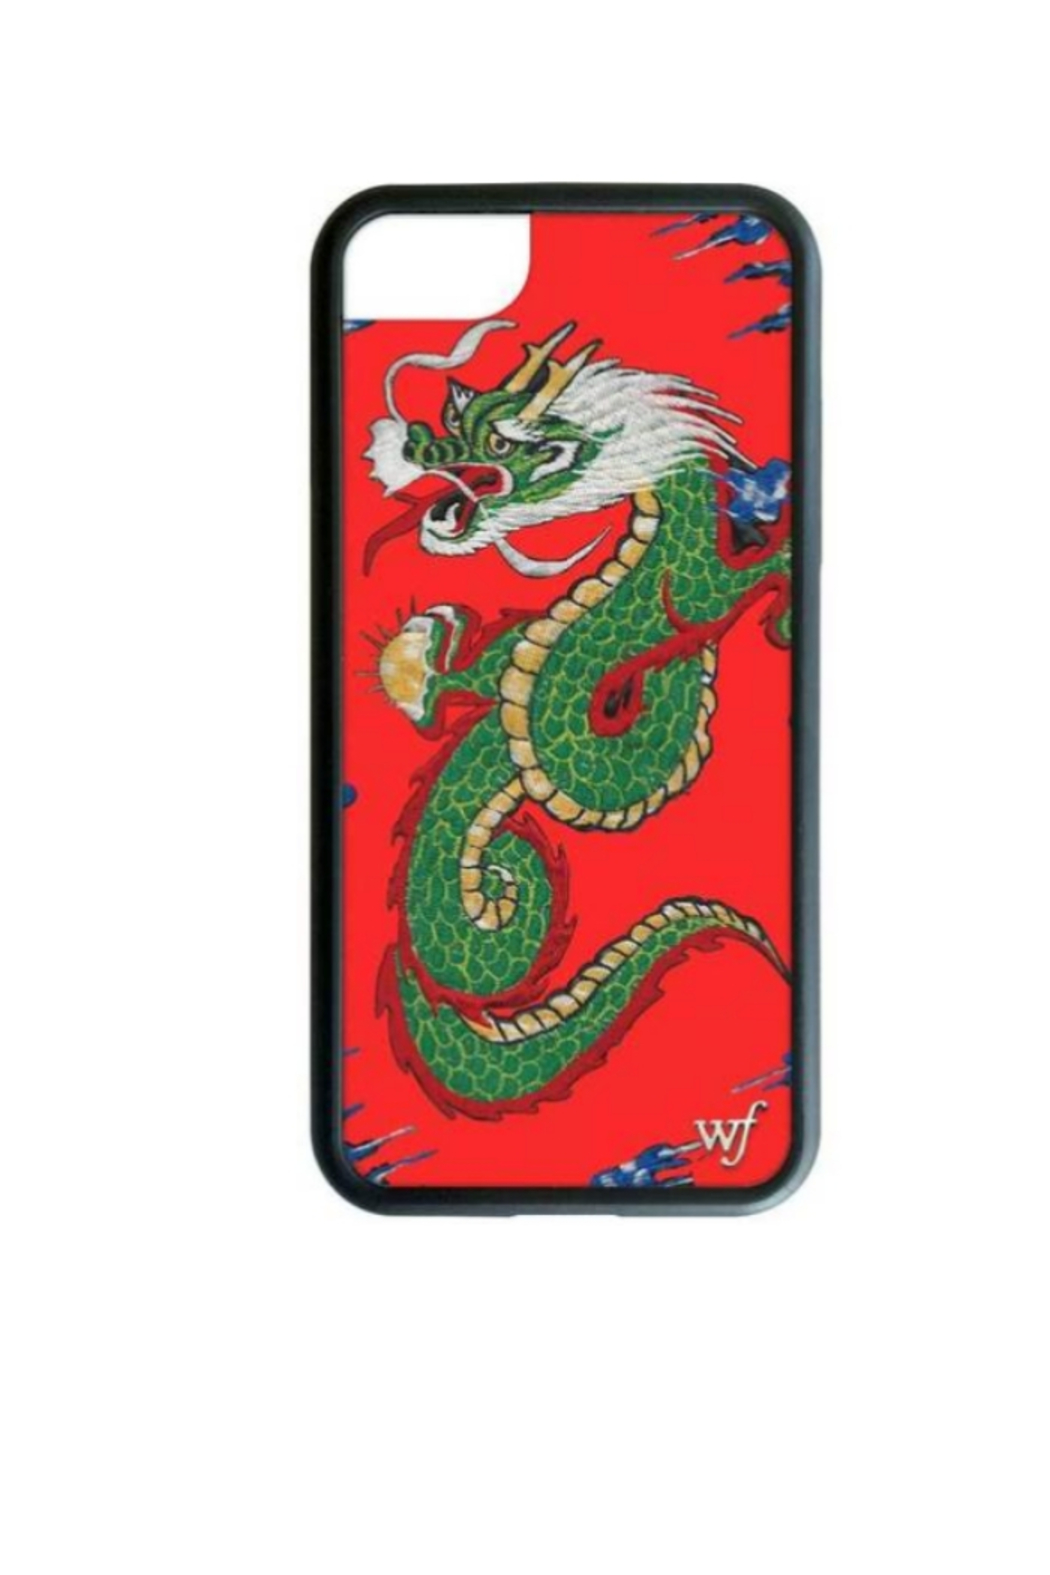 adc6059a31 Wildflower Cases Red Dragon iPhone 6/7/8 Case from New York by Let's ...